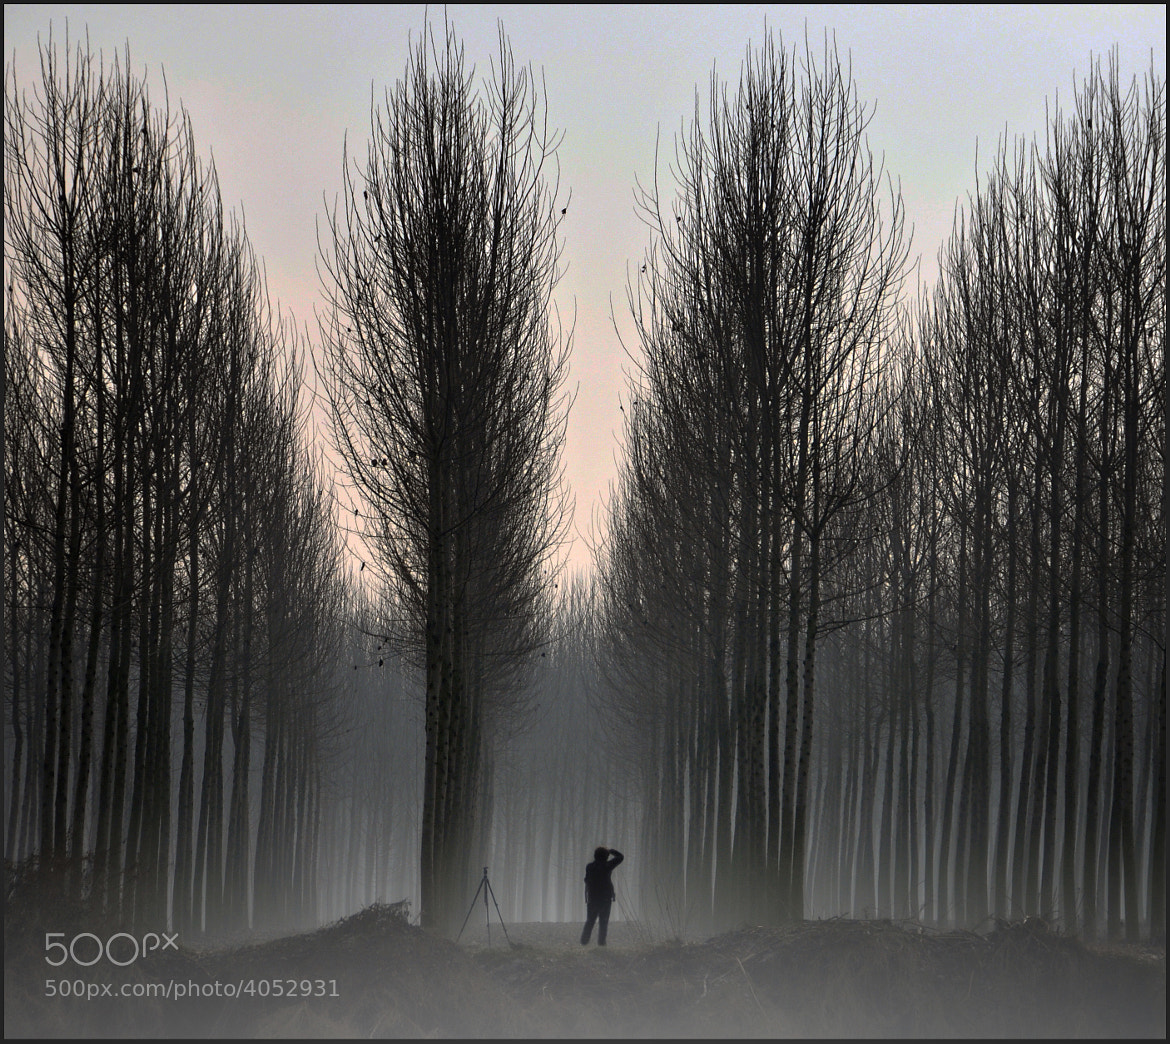 Photograph beginning of 2012 with those who love photography by Silena  Lambertini on 500px